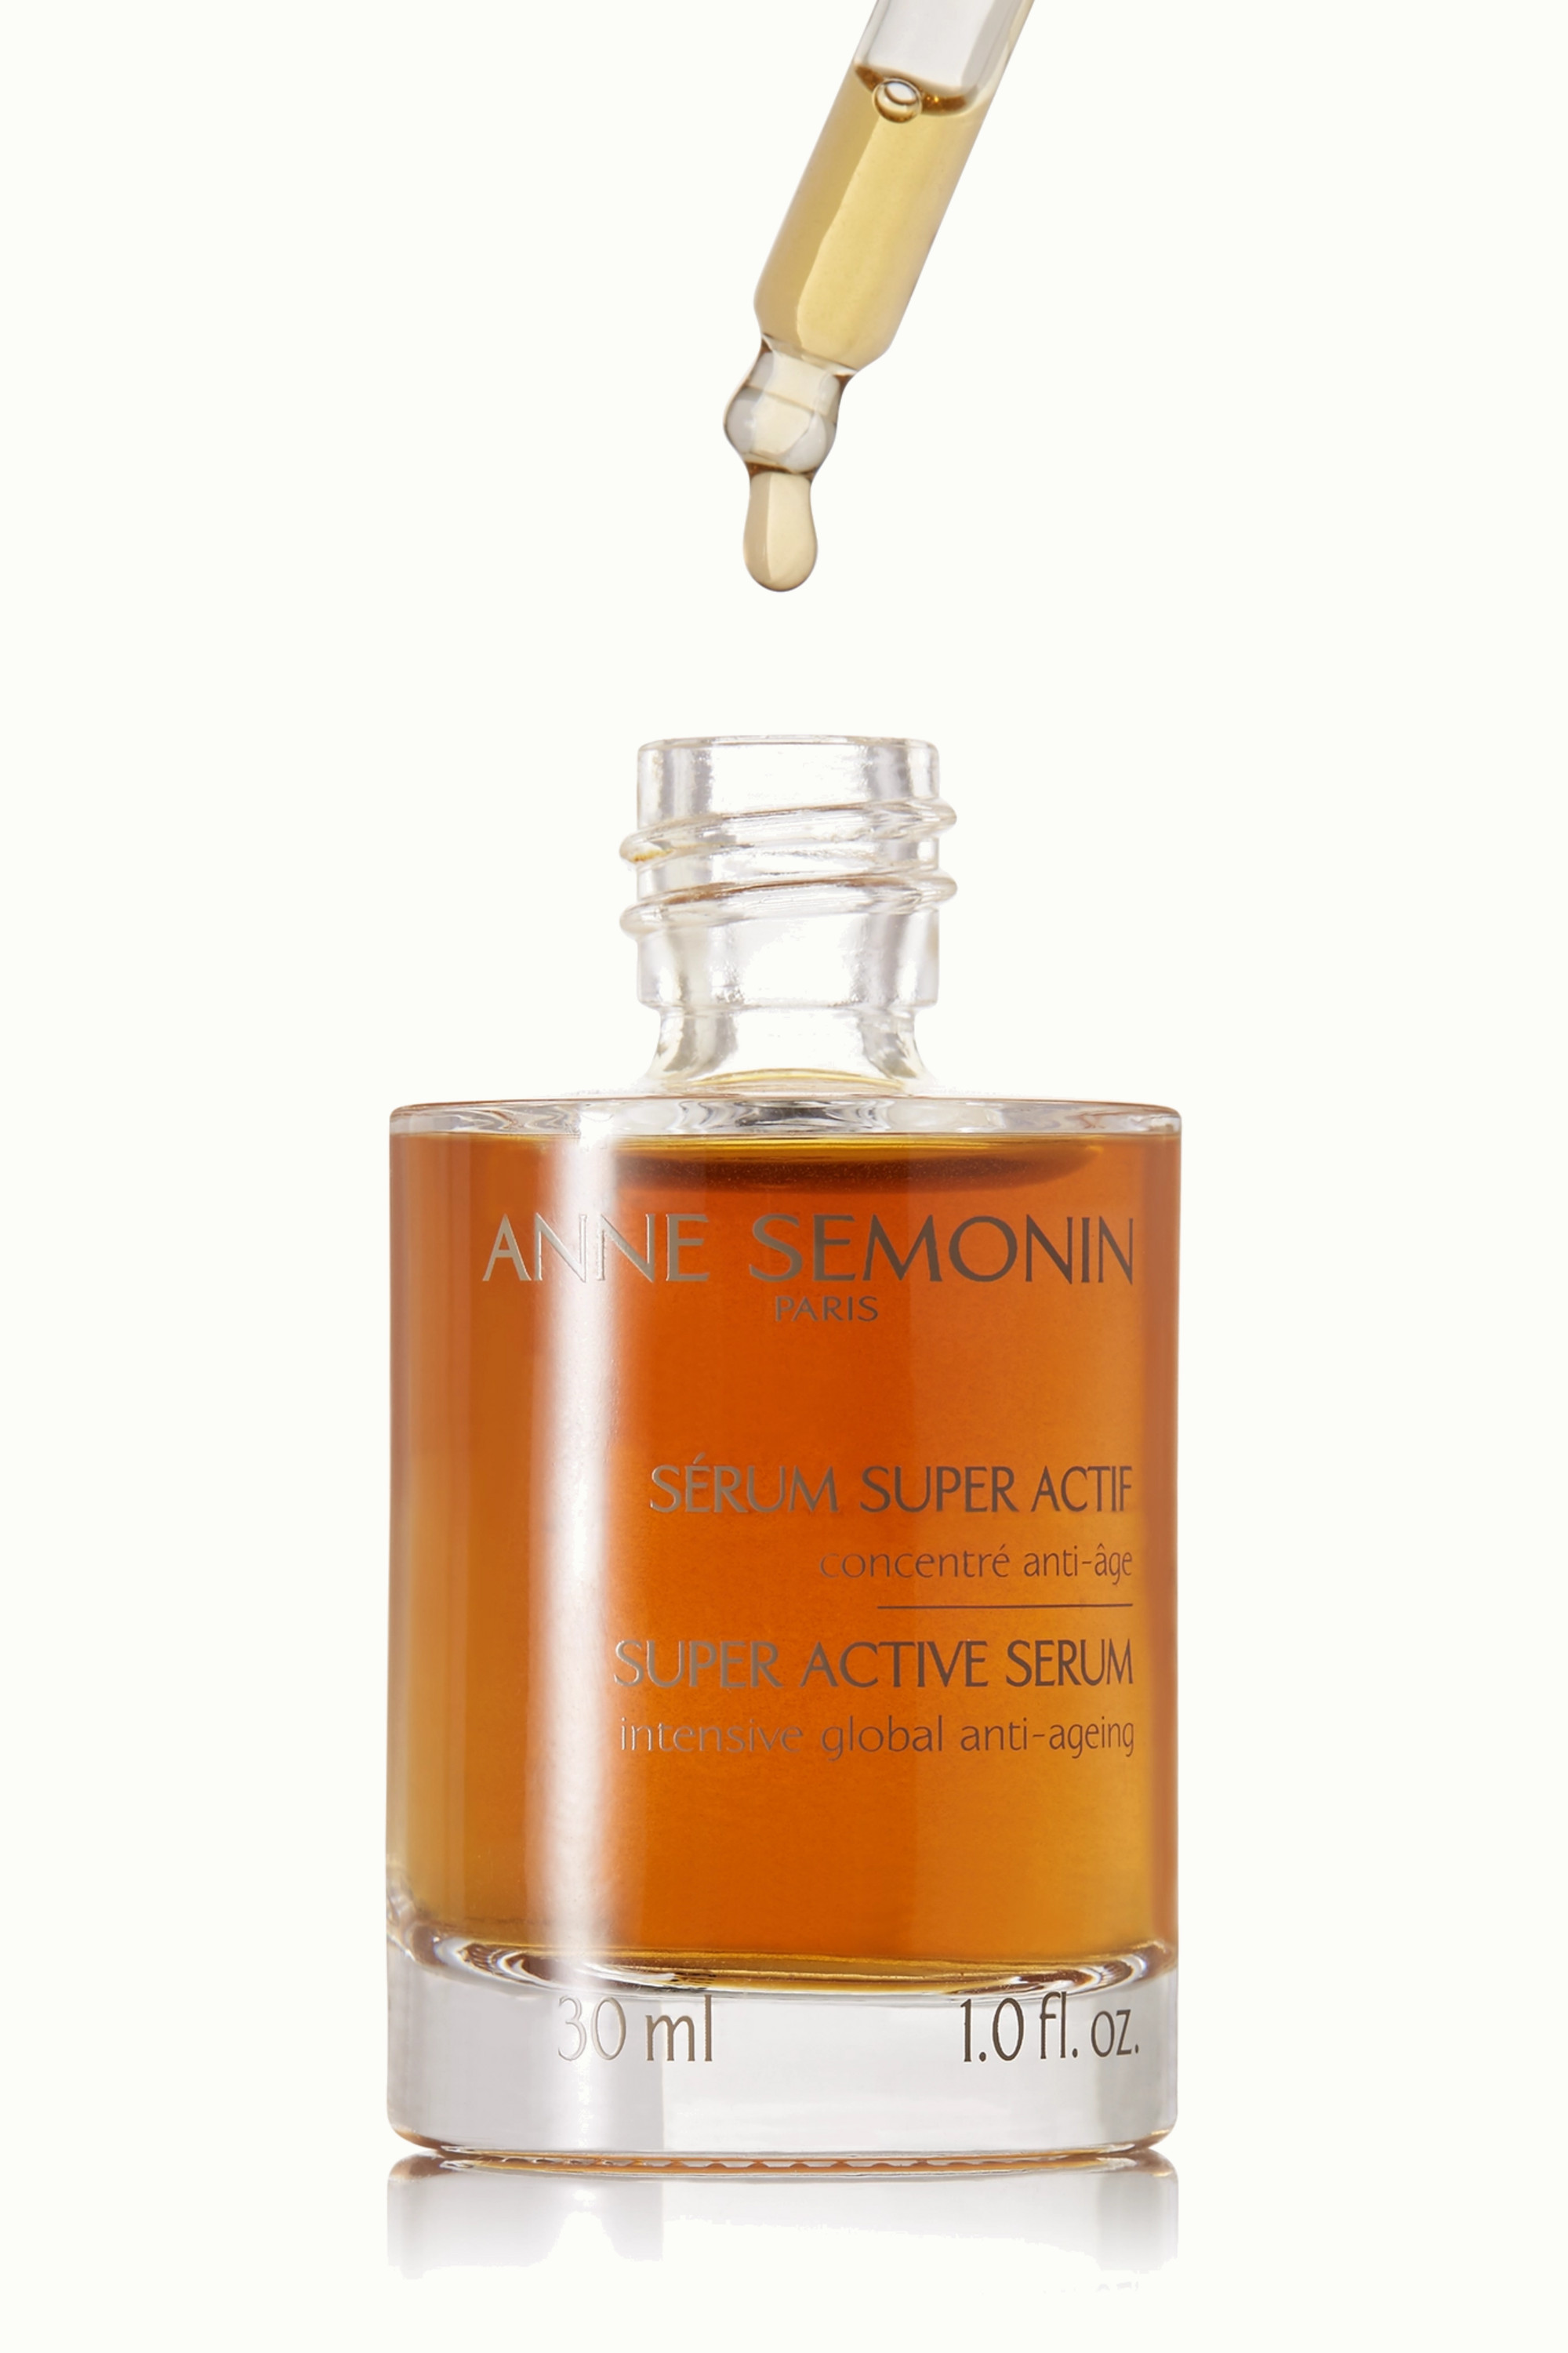 ANNE SEMONIN Super Active Serum, 30ml